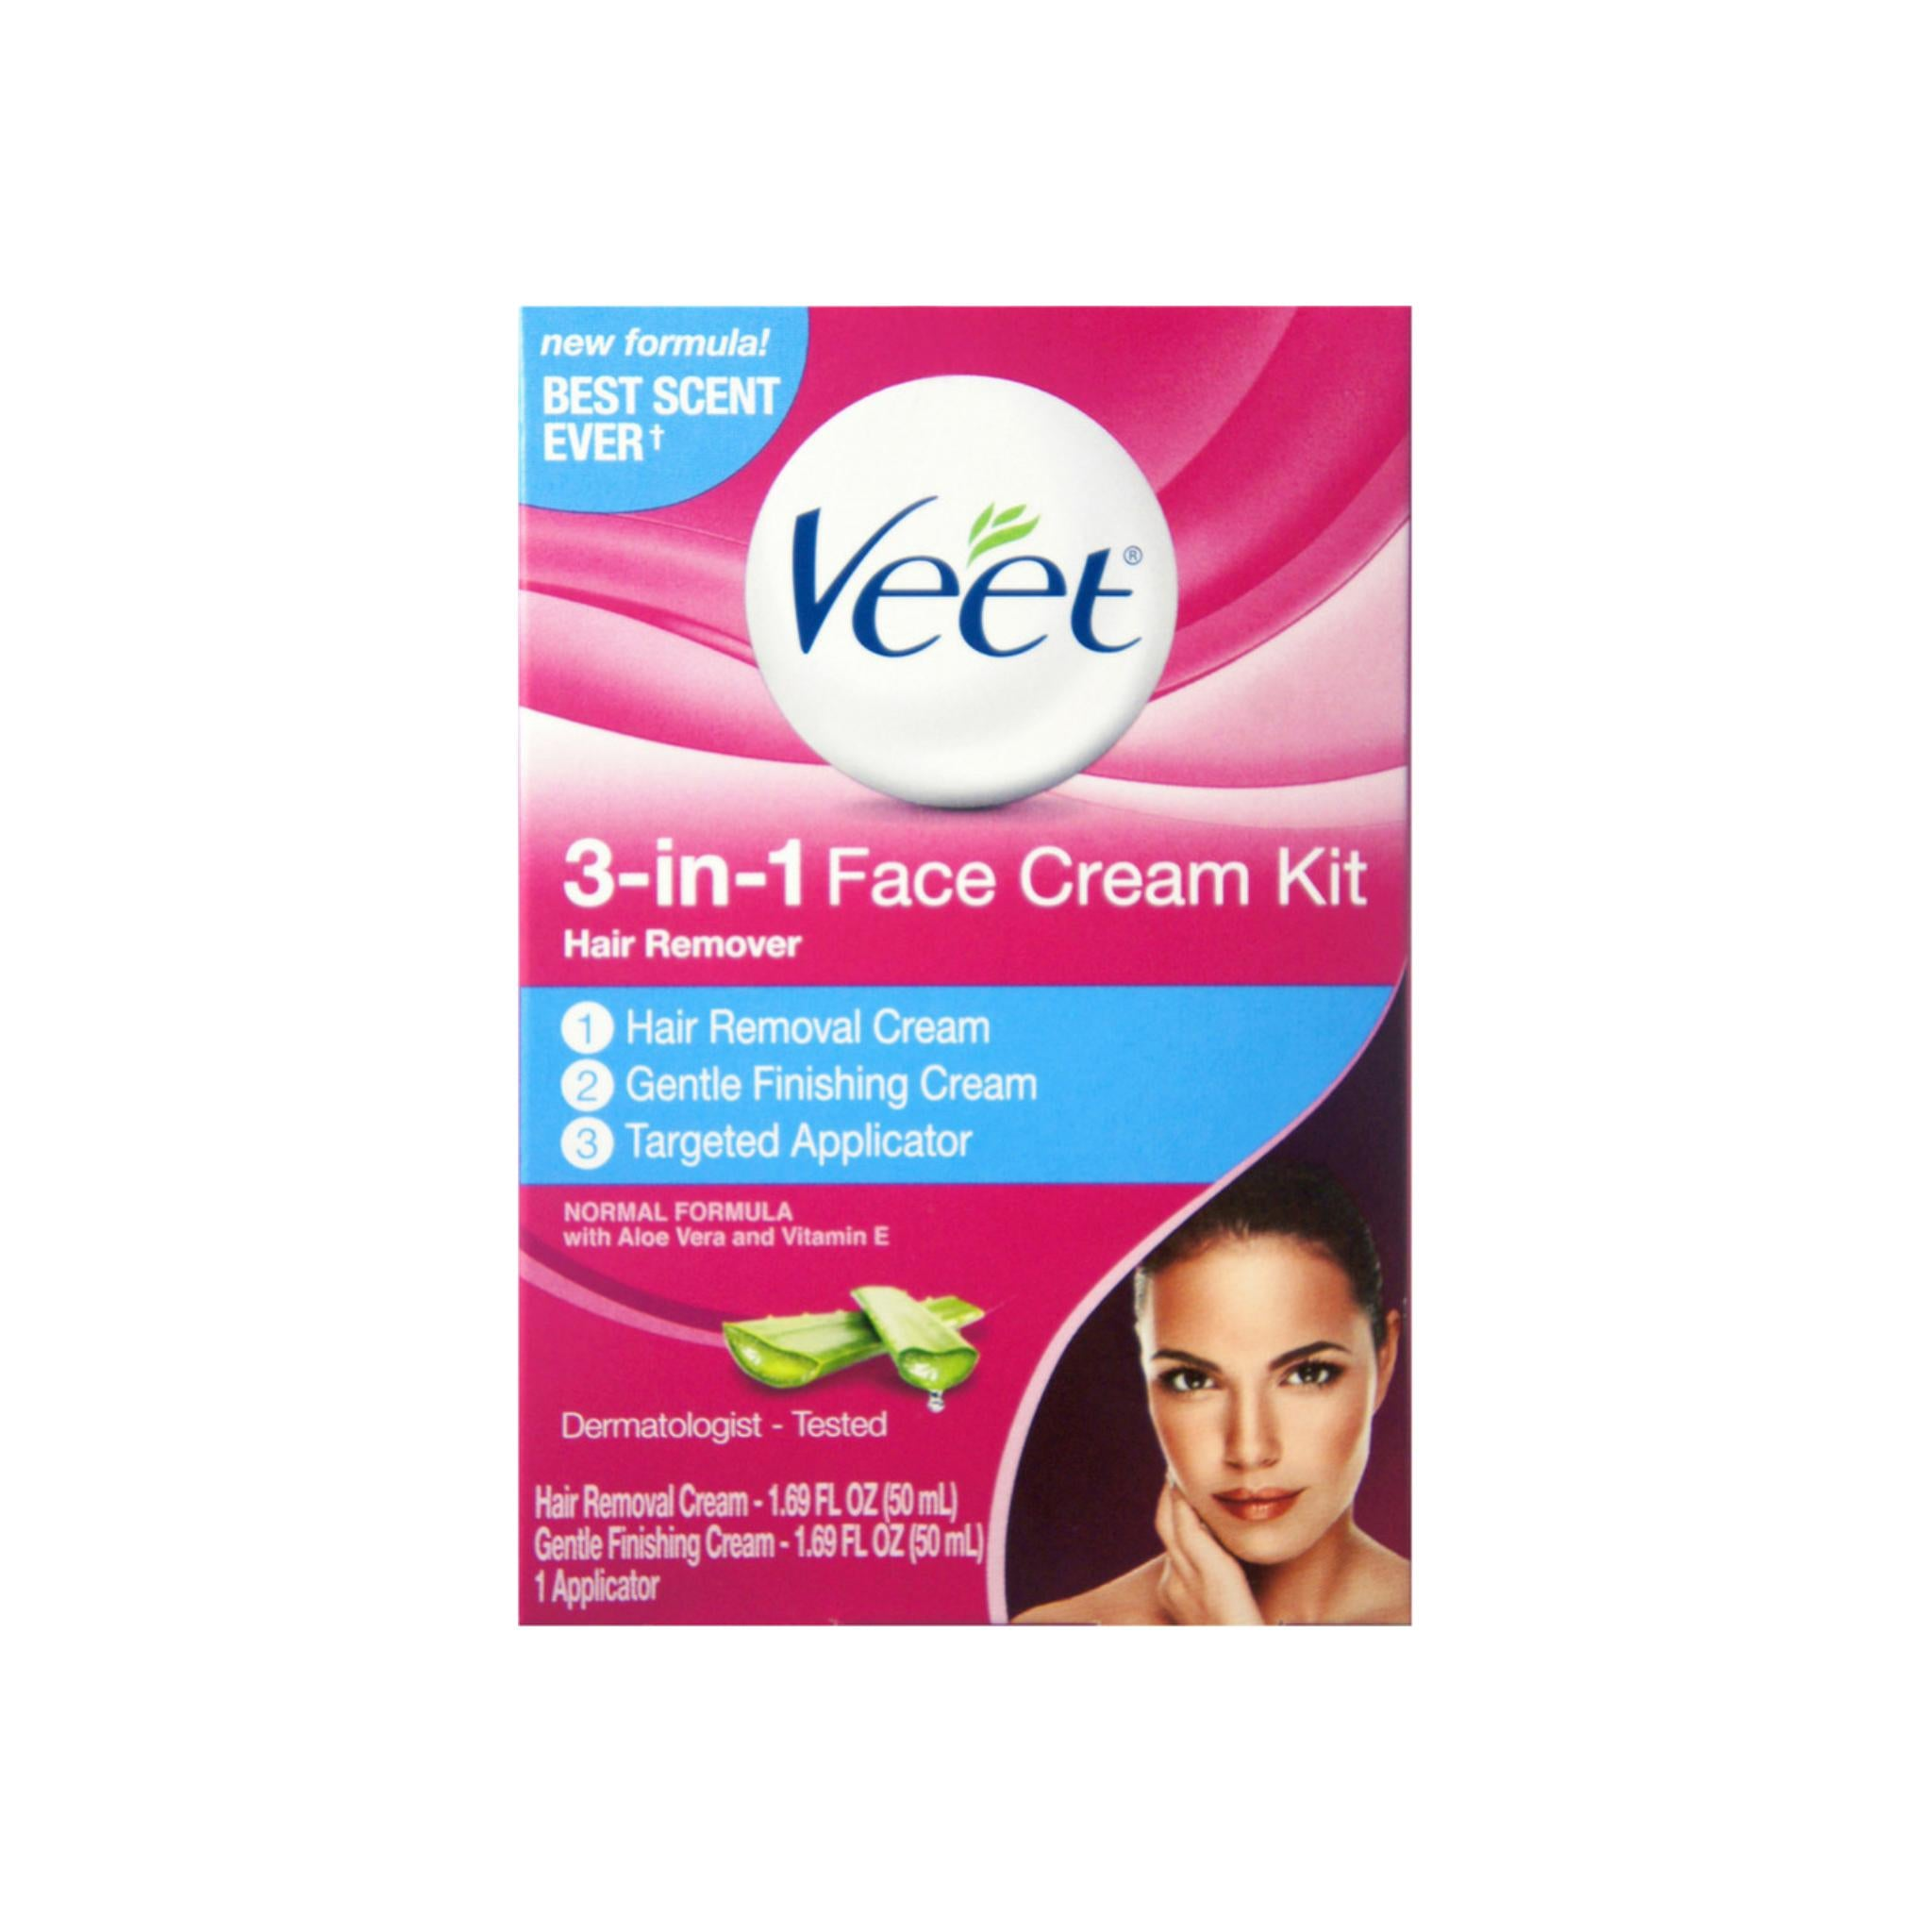 Veet 3 In 1 Face Cream Hair Remover Kit Normal Formula With Aloe